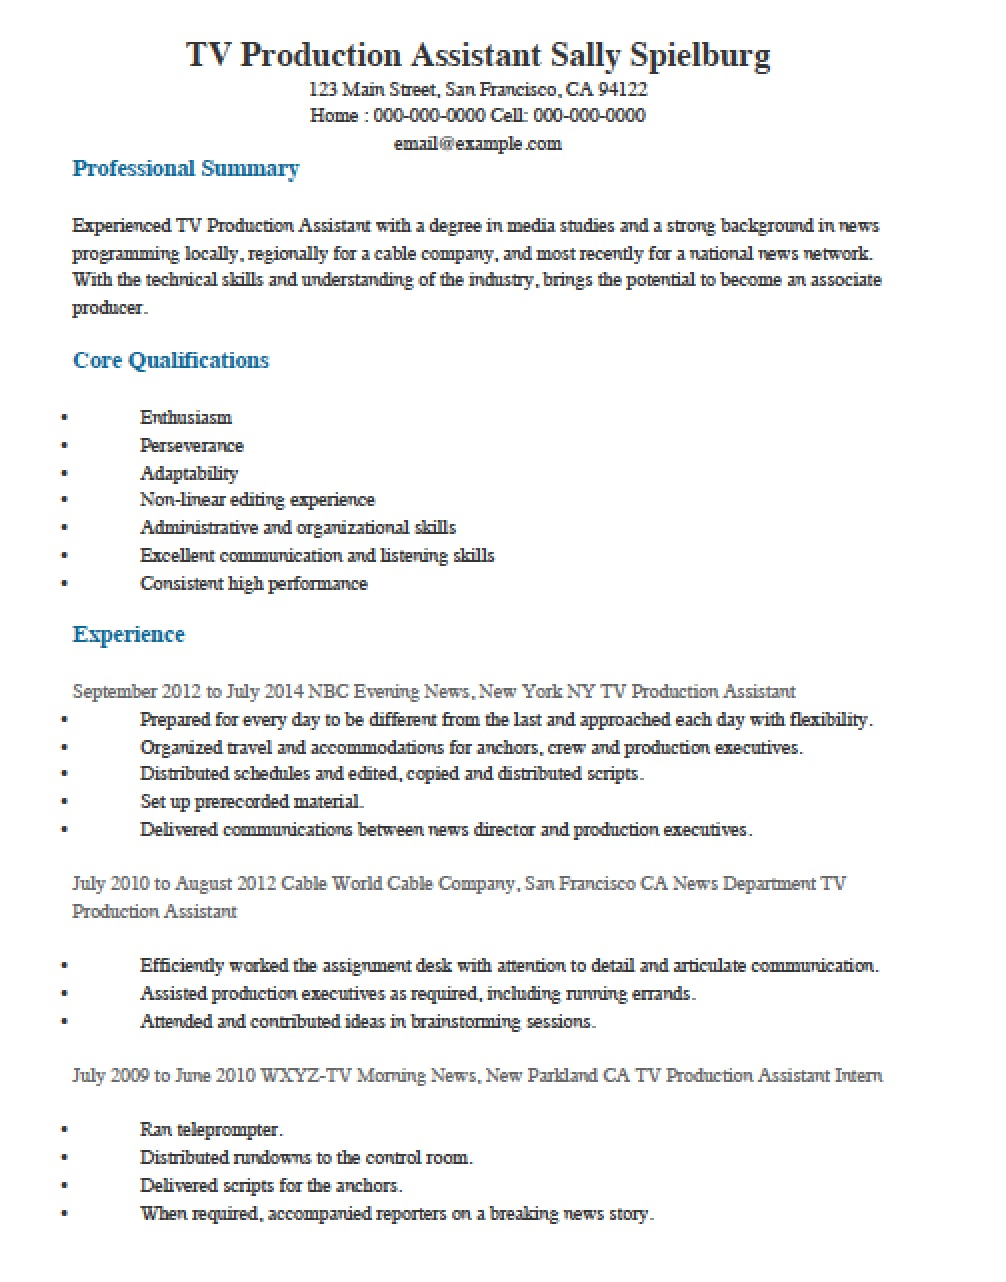 Resume Resume Template Com free television tv production assistant resume template sample adobe pdf rich text rtf microsoft word